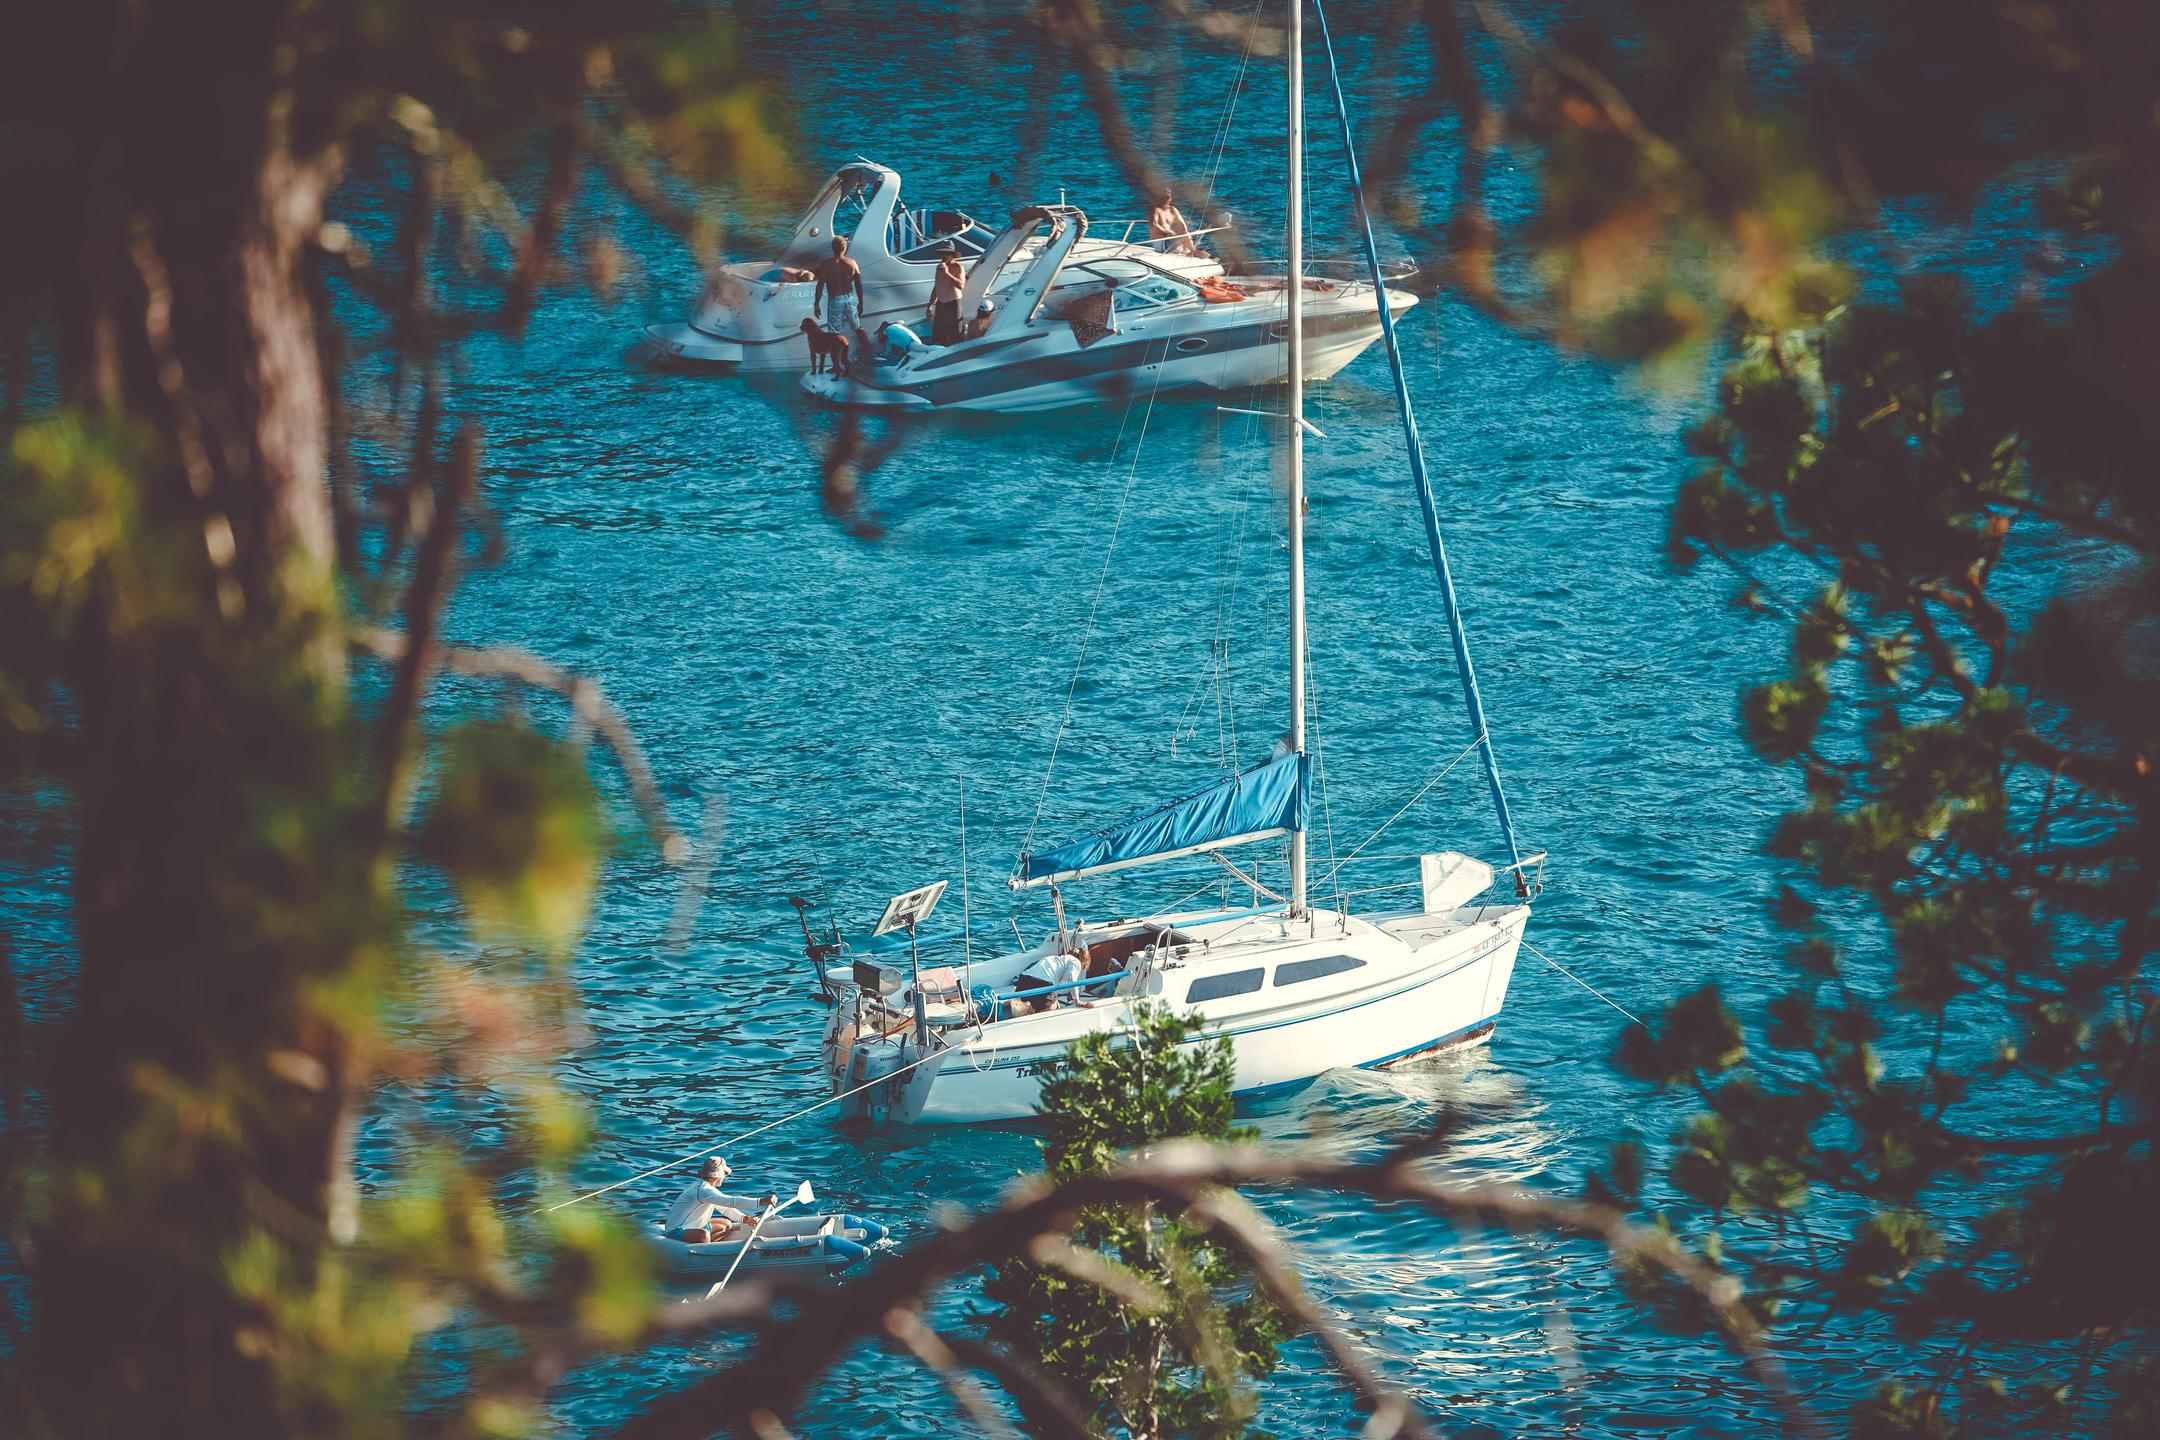 There are plenty of secret coves along the East Shore of Lake Tahoe only accessible by boat, so be sure to ask a local!